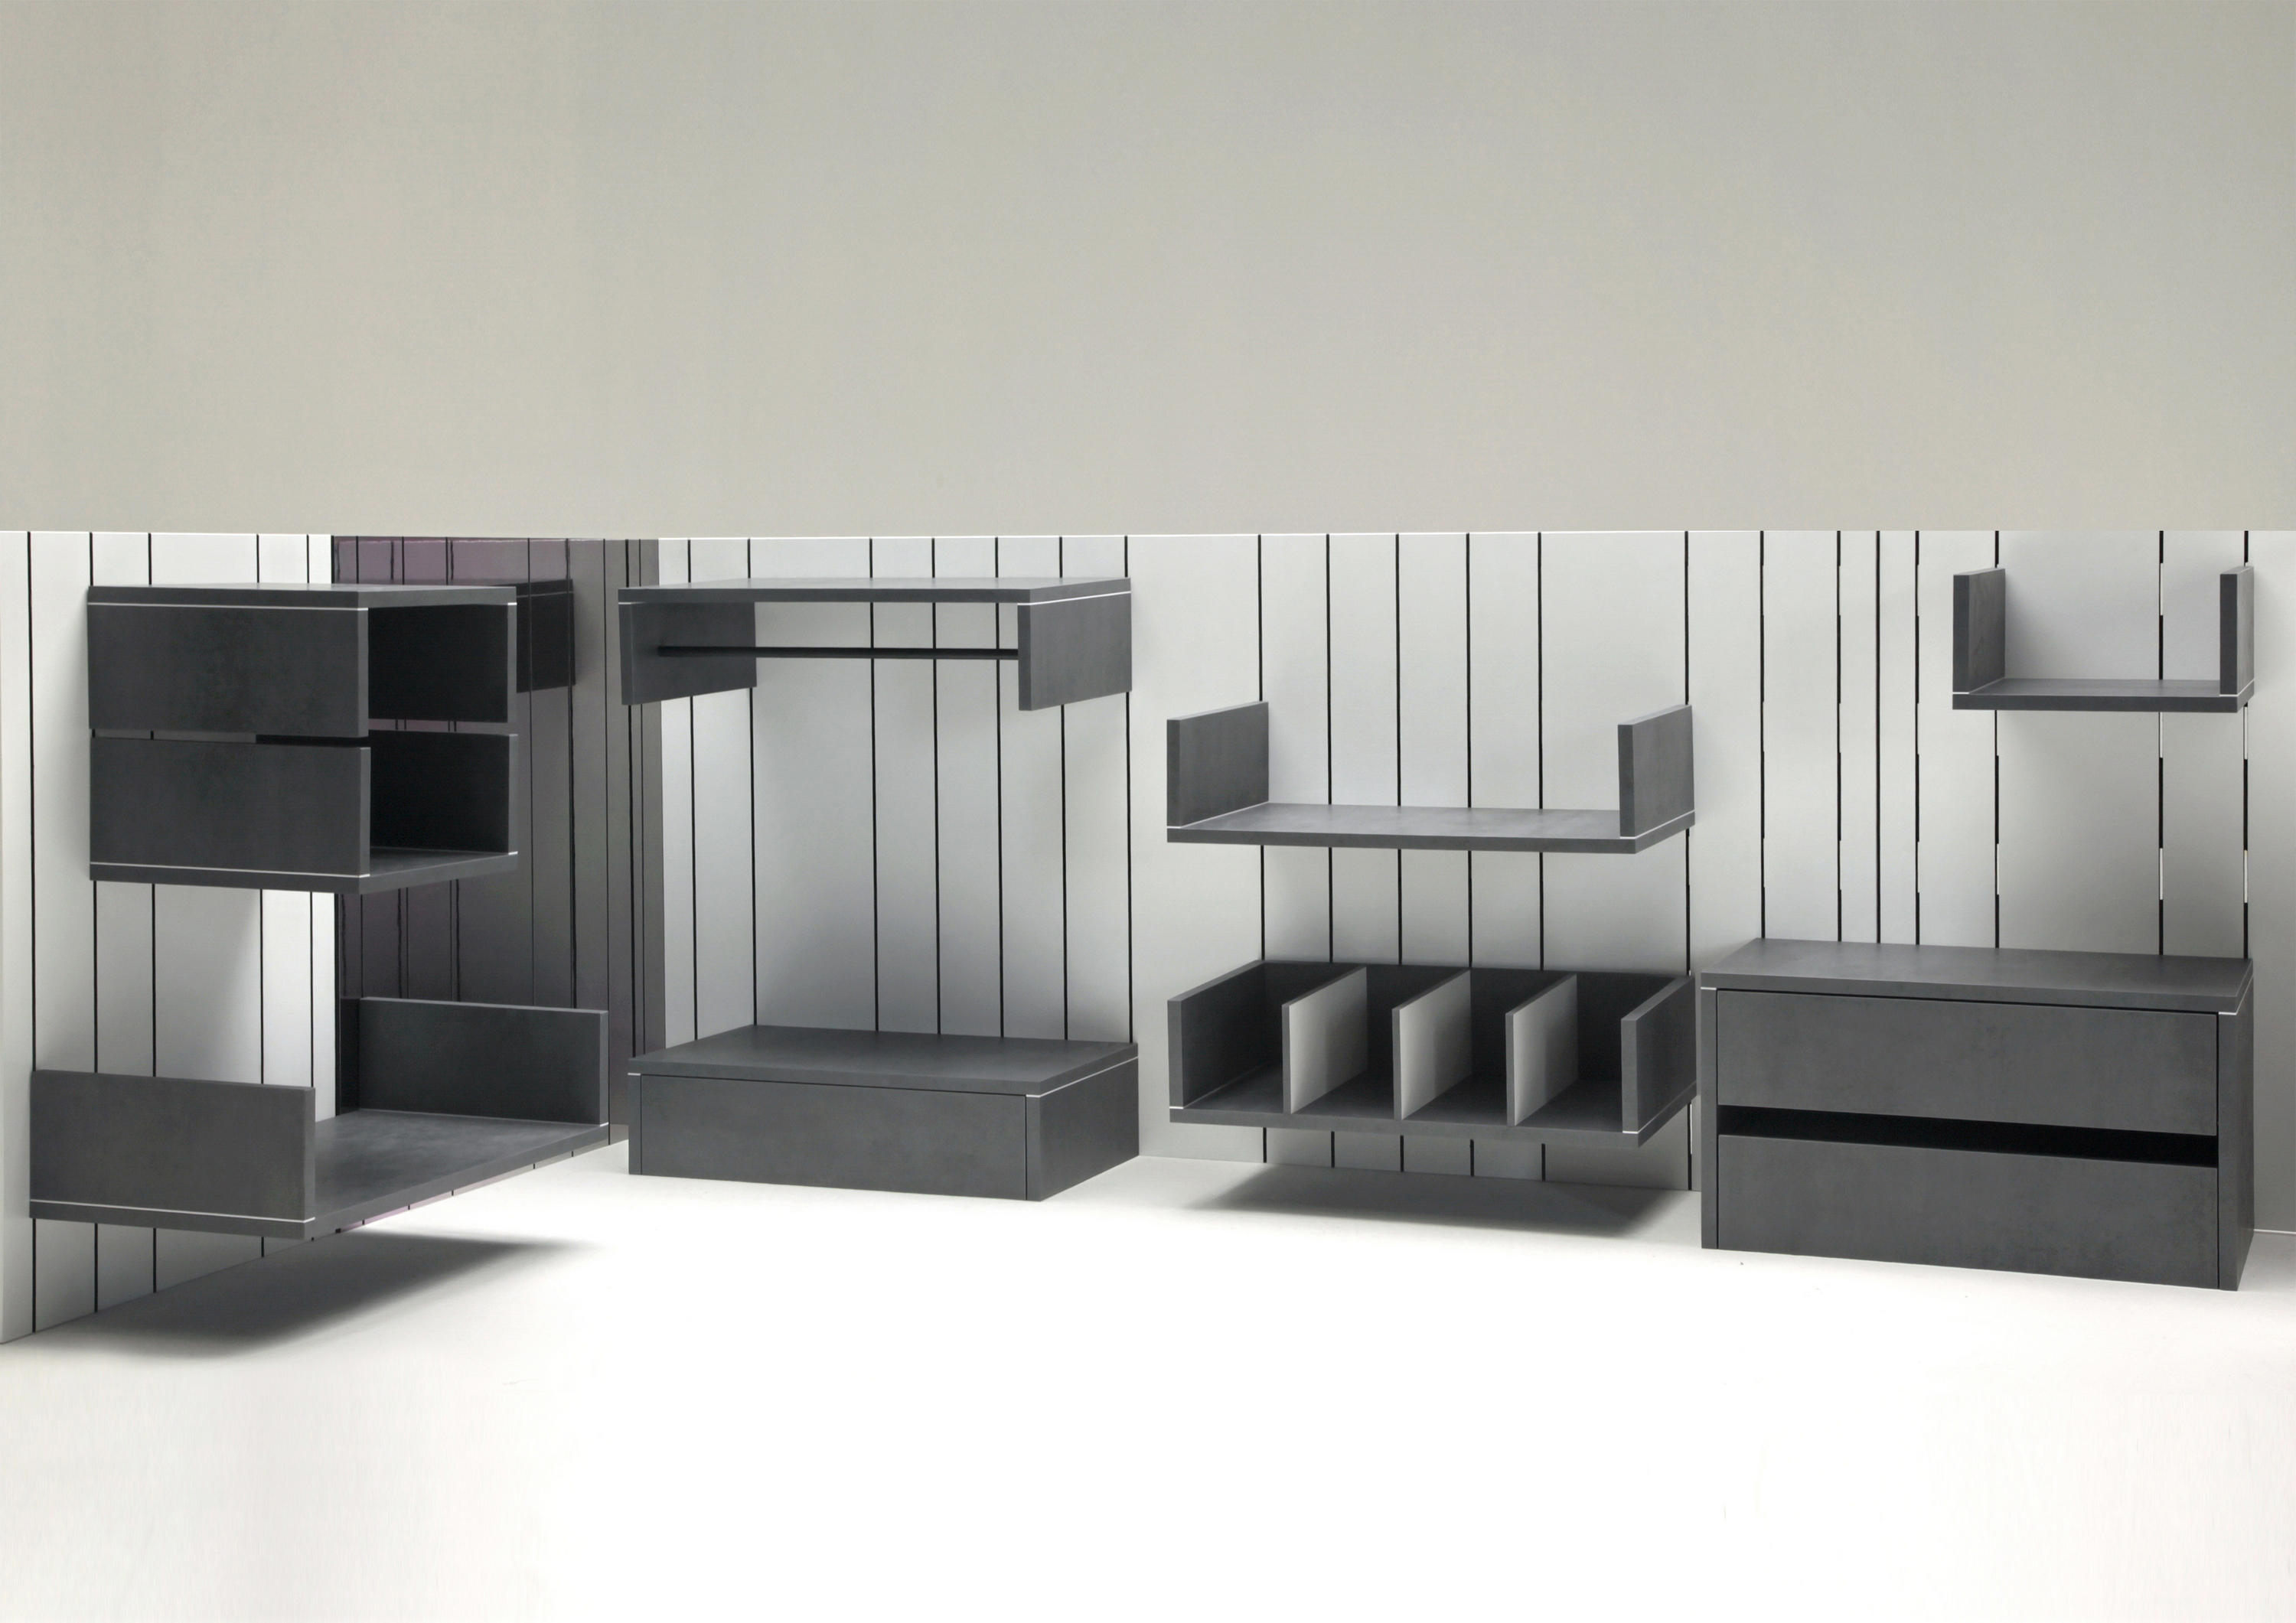 Lind Modular Storage System Shelving From Dizz Concept